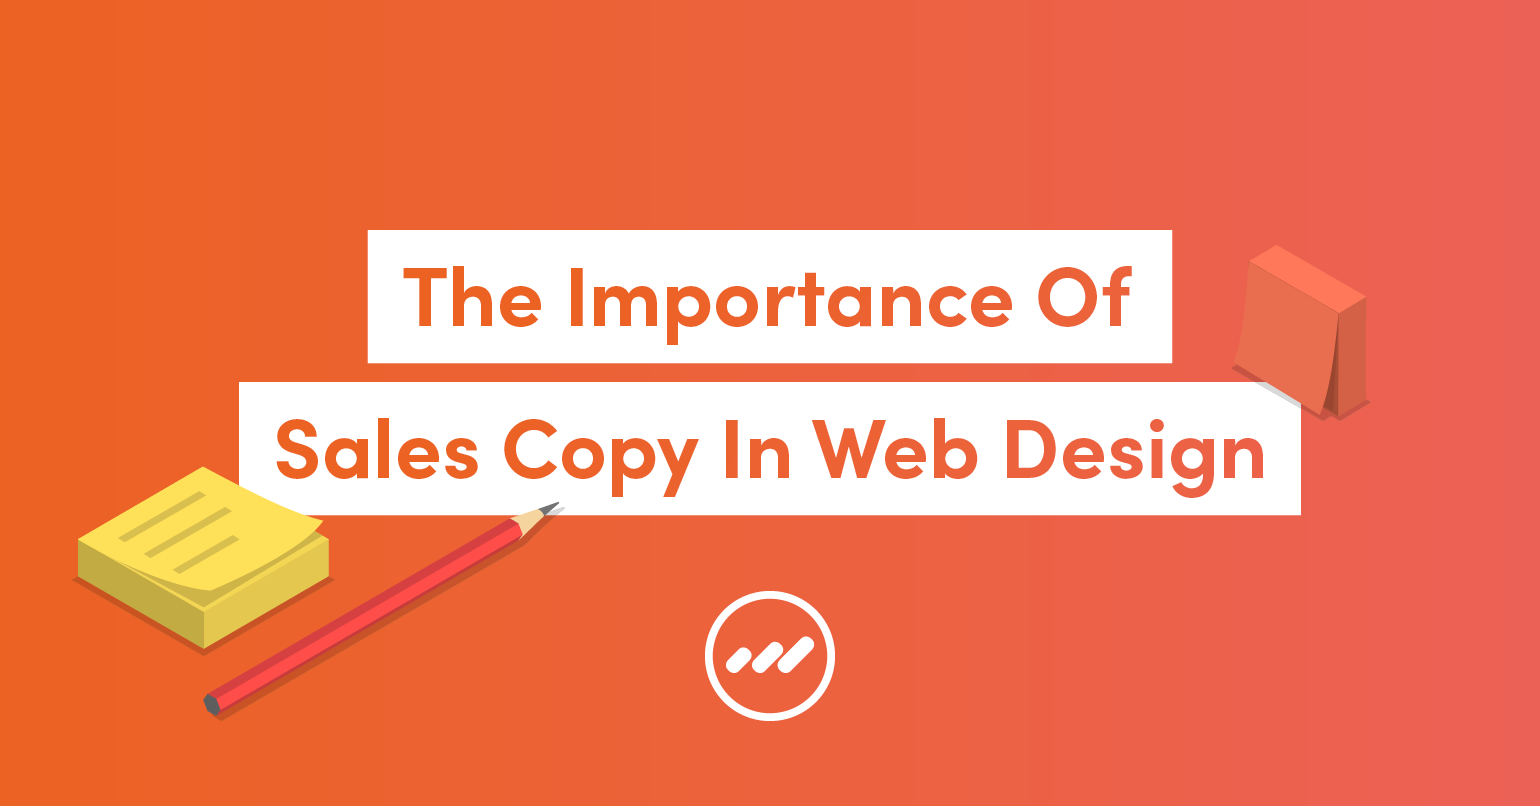 TheImportanceOfSalesCopyInWebDesign